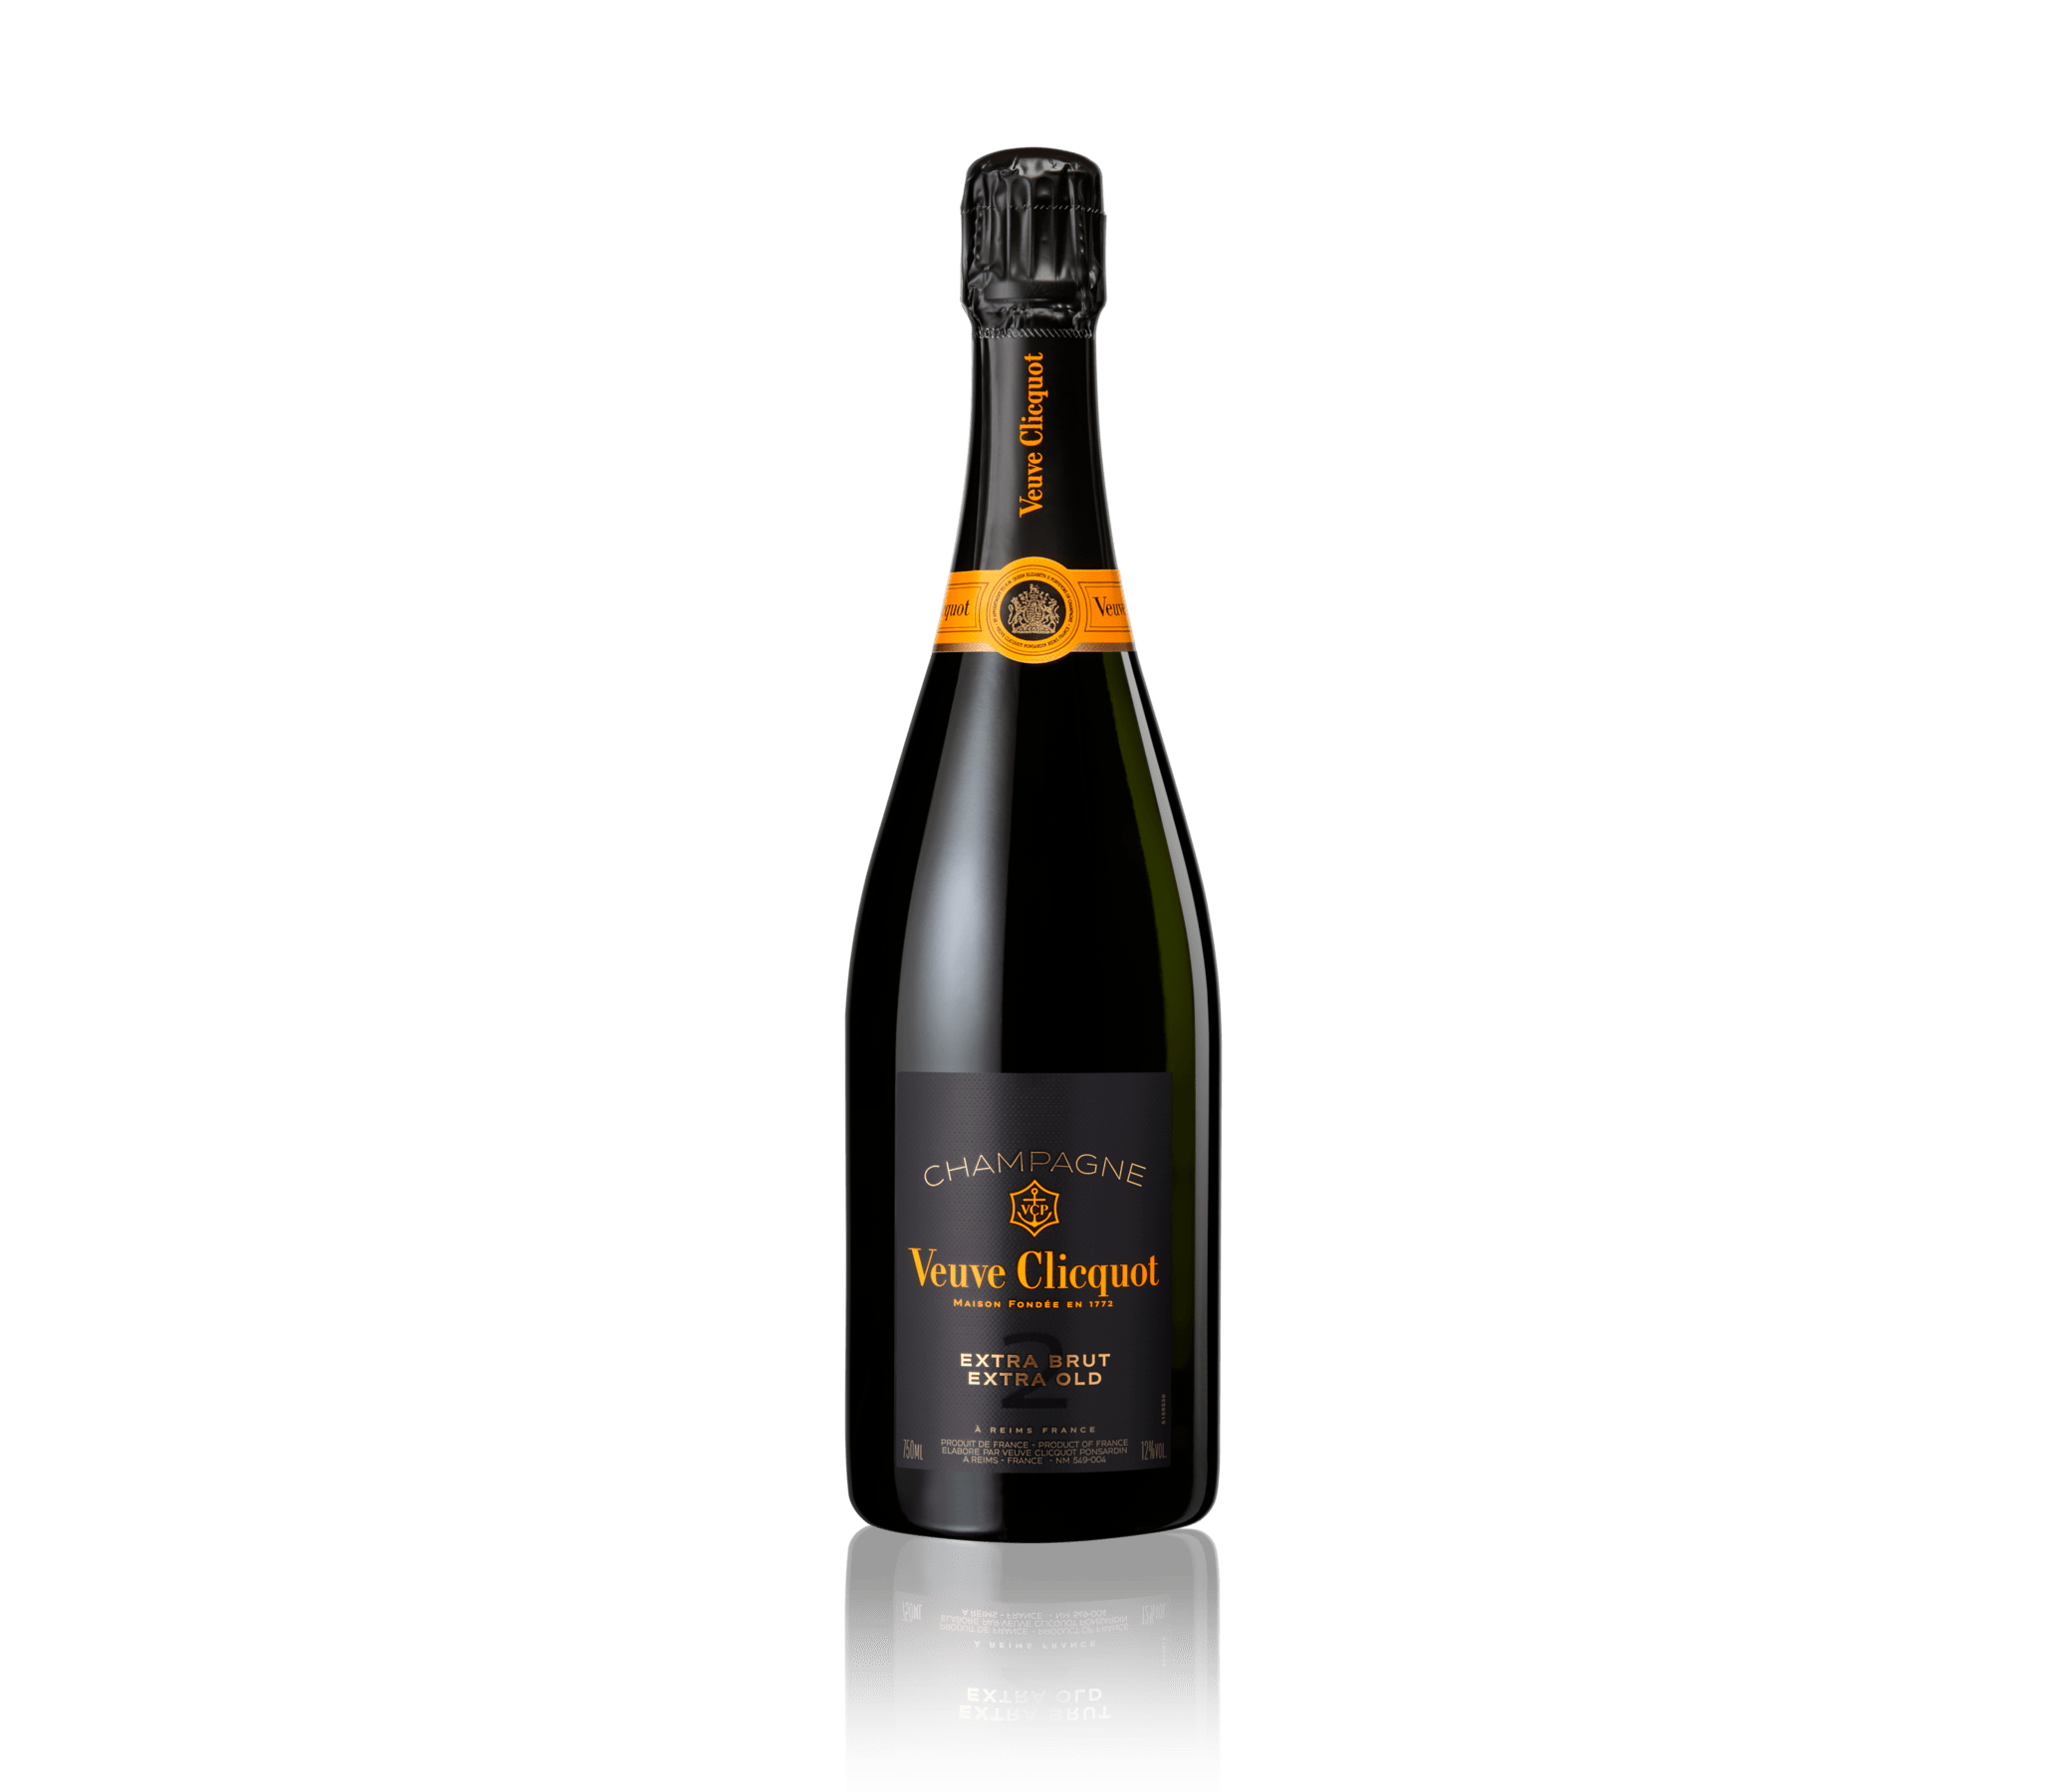 Bouteille de Champagne Veuve Clicquot Extra Brut Extra Old 2